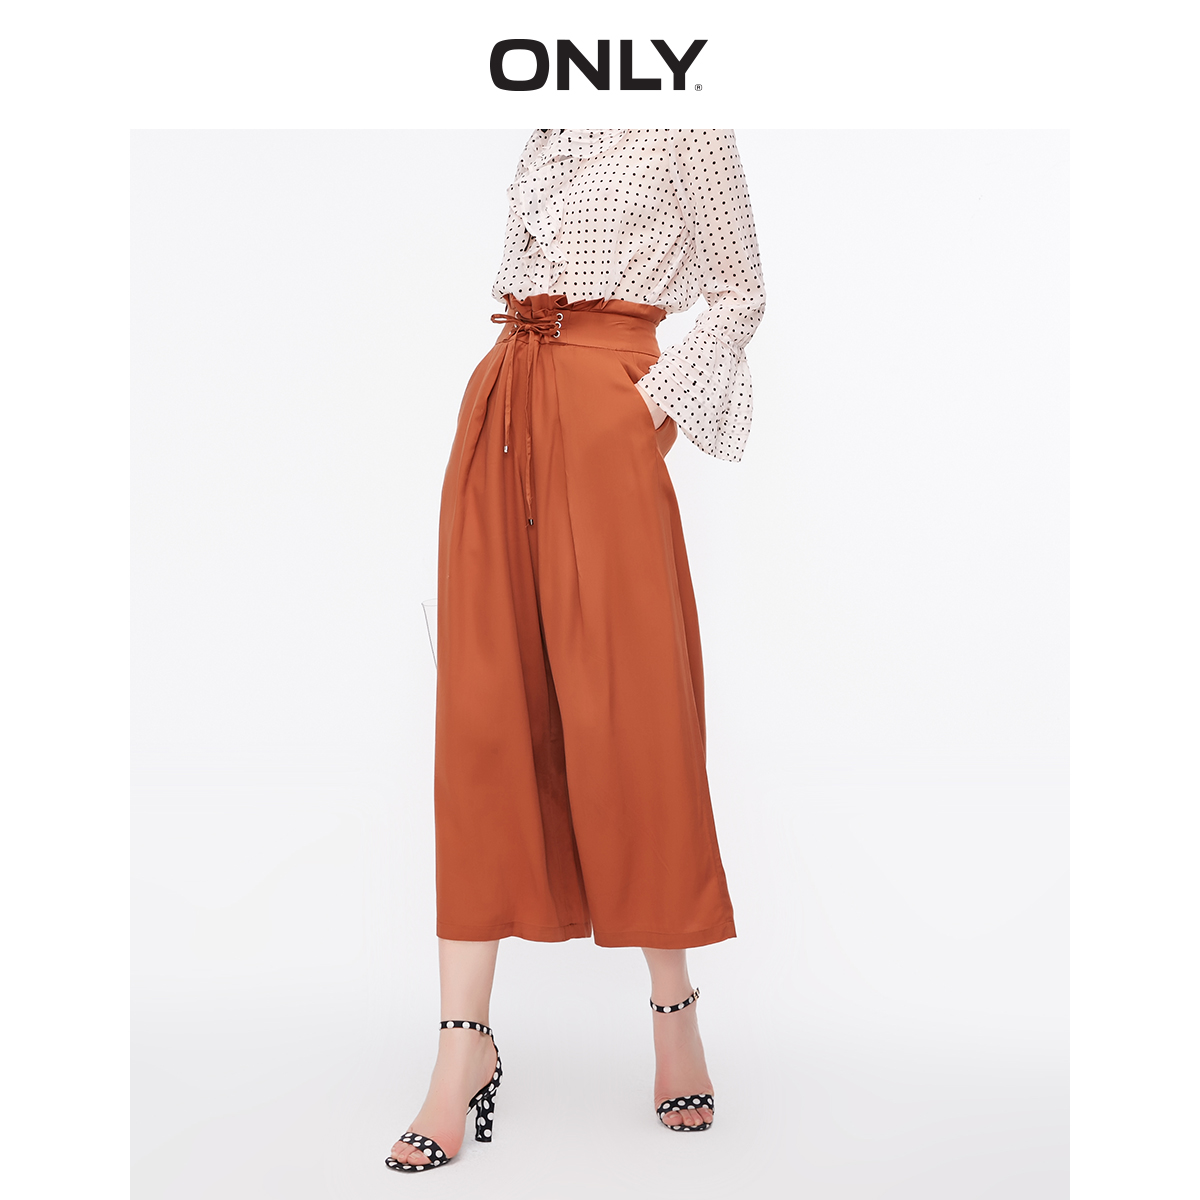 ONLY Women's Pure Color High-rise Wide-leg Pants | 119150531